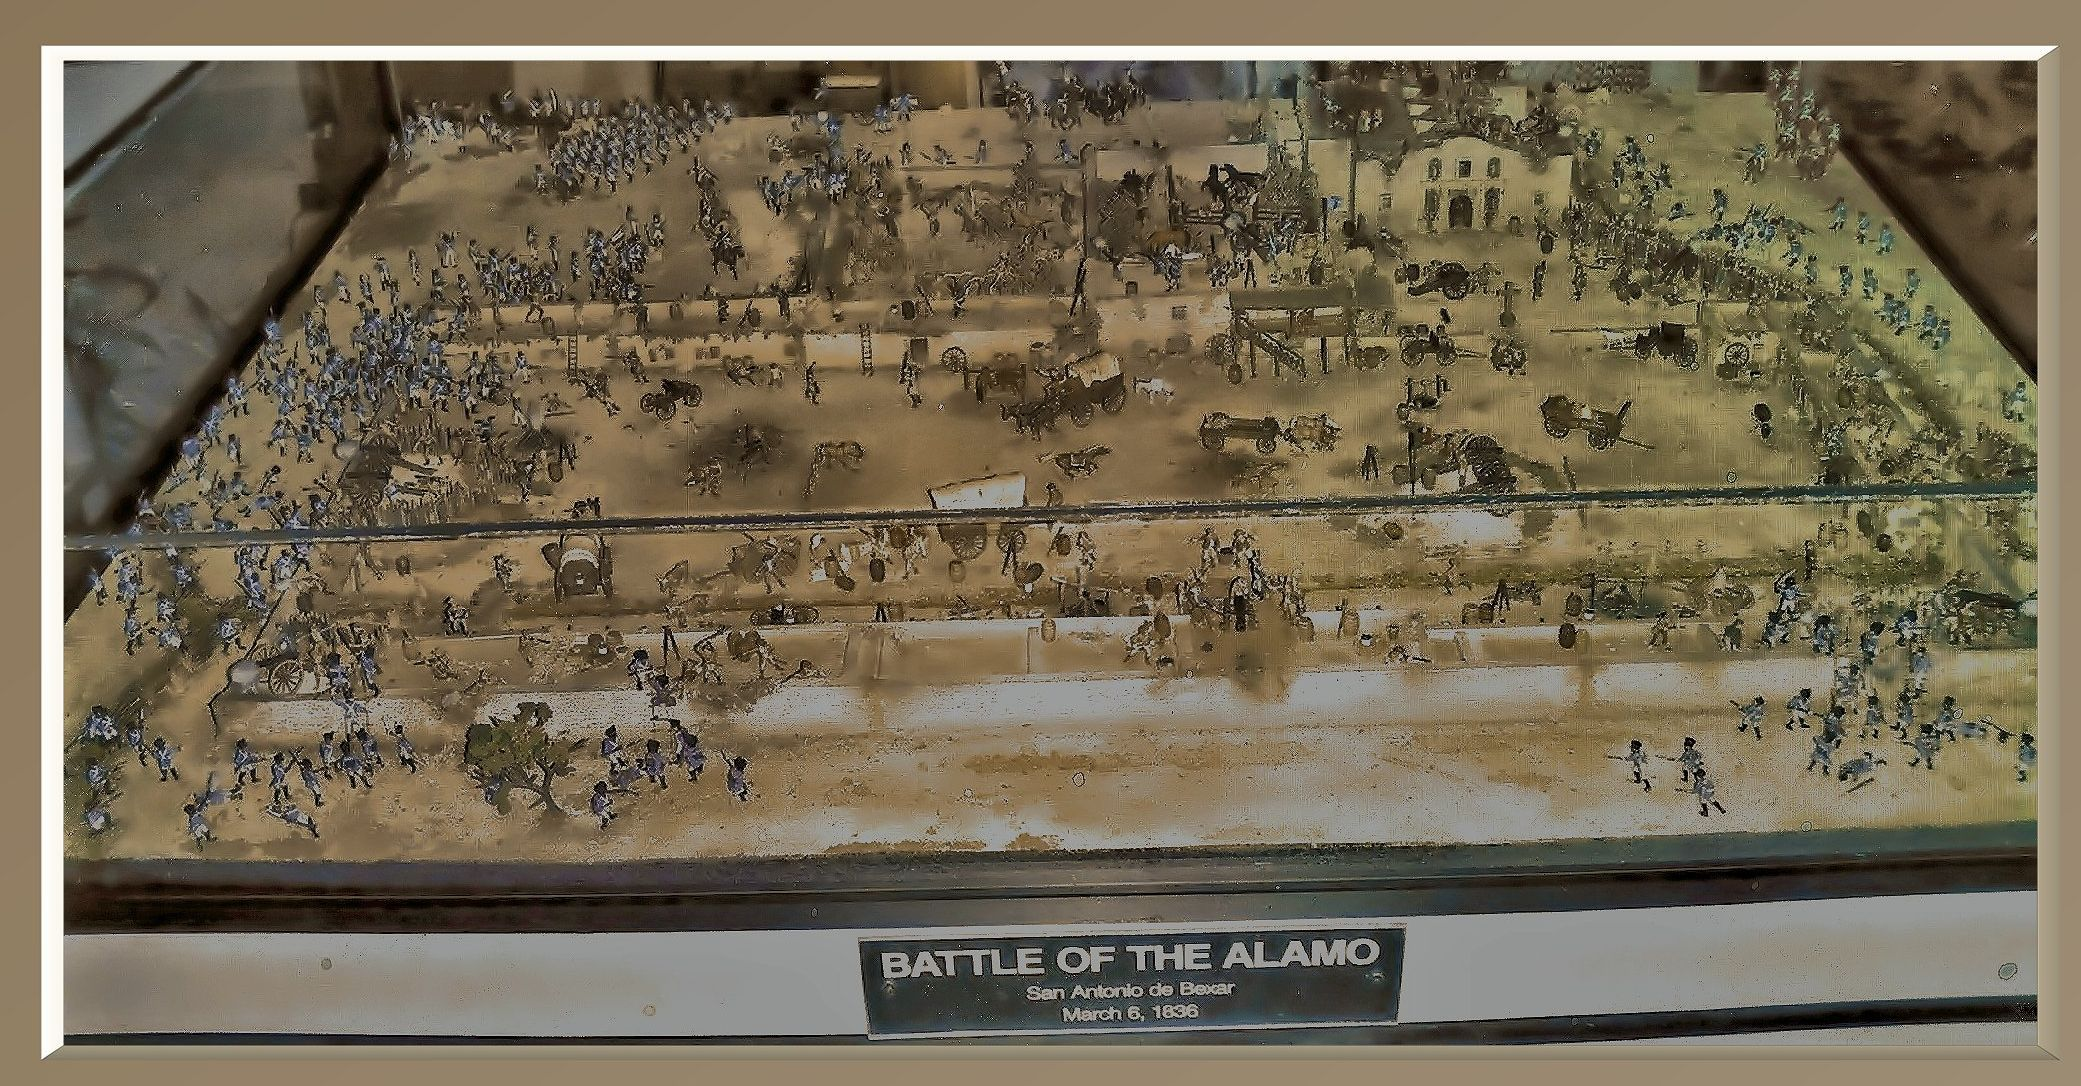 Buy A Custom Made Scale Model Of The Battle Alamo To Order From Robs